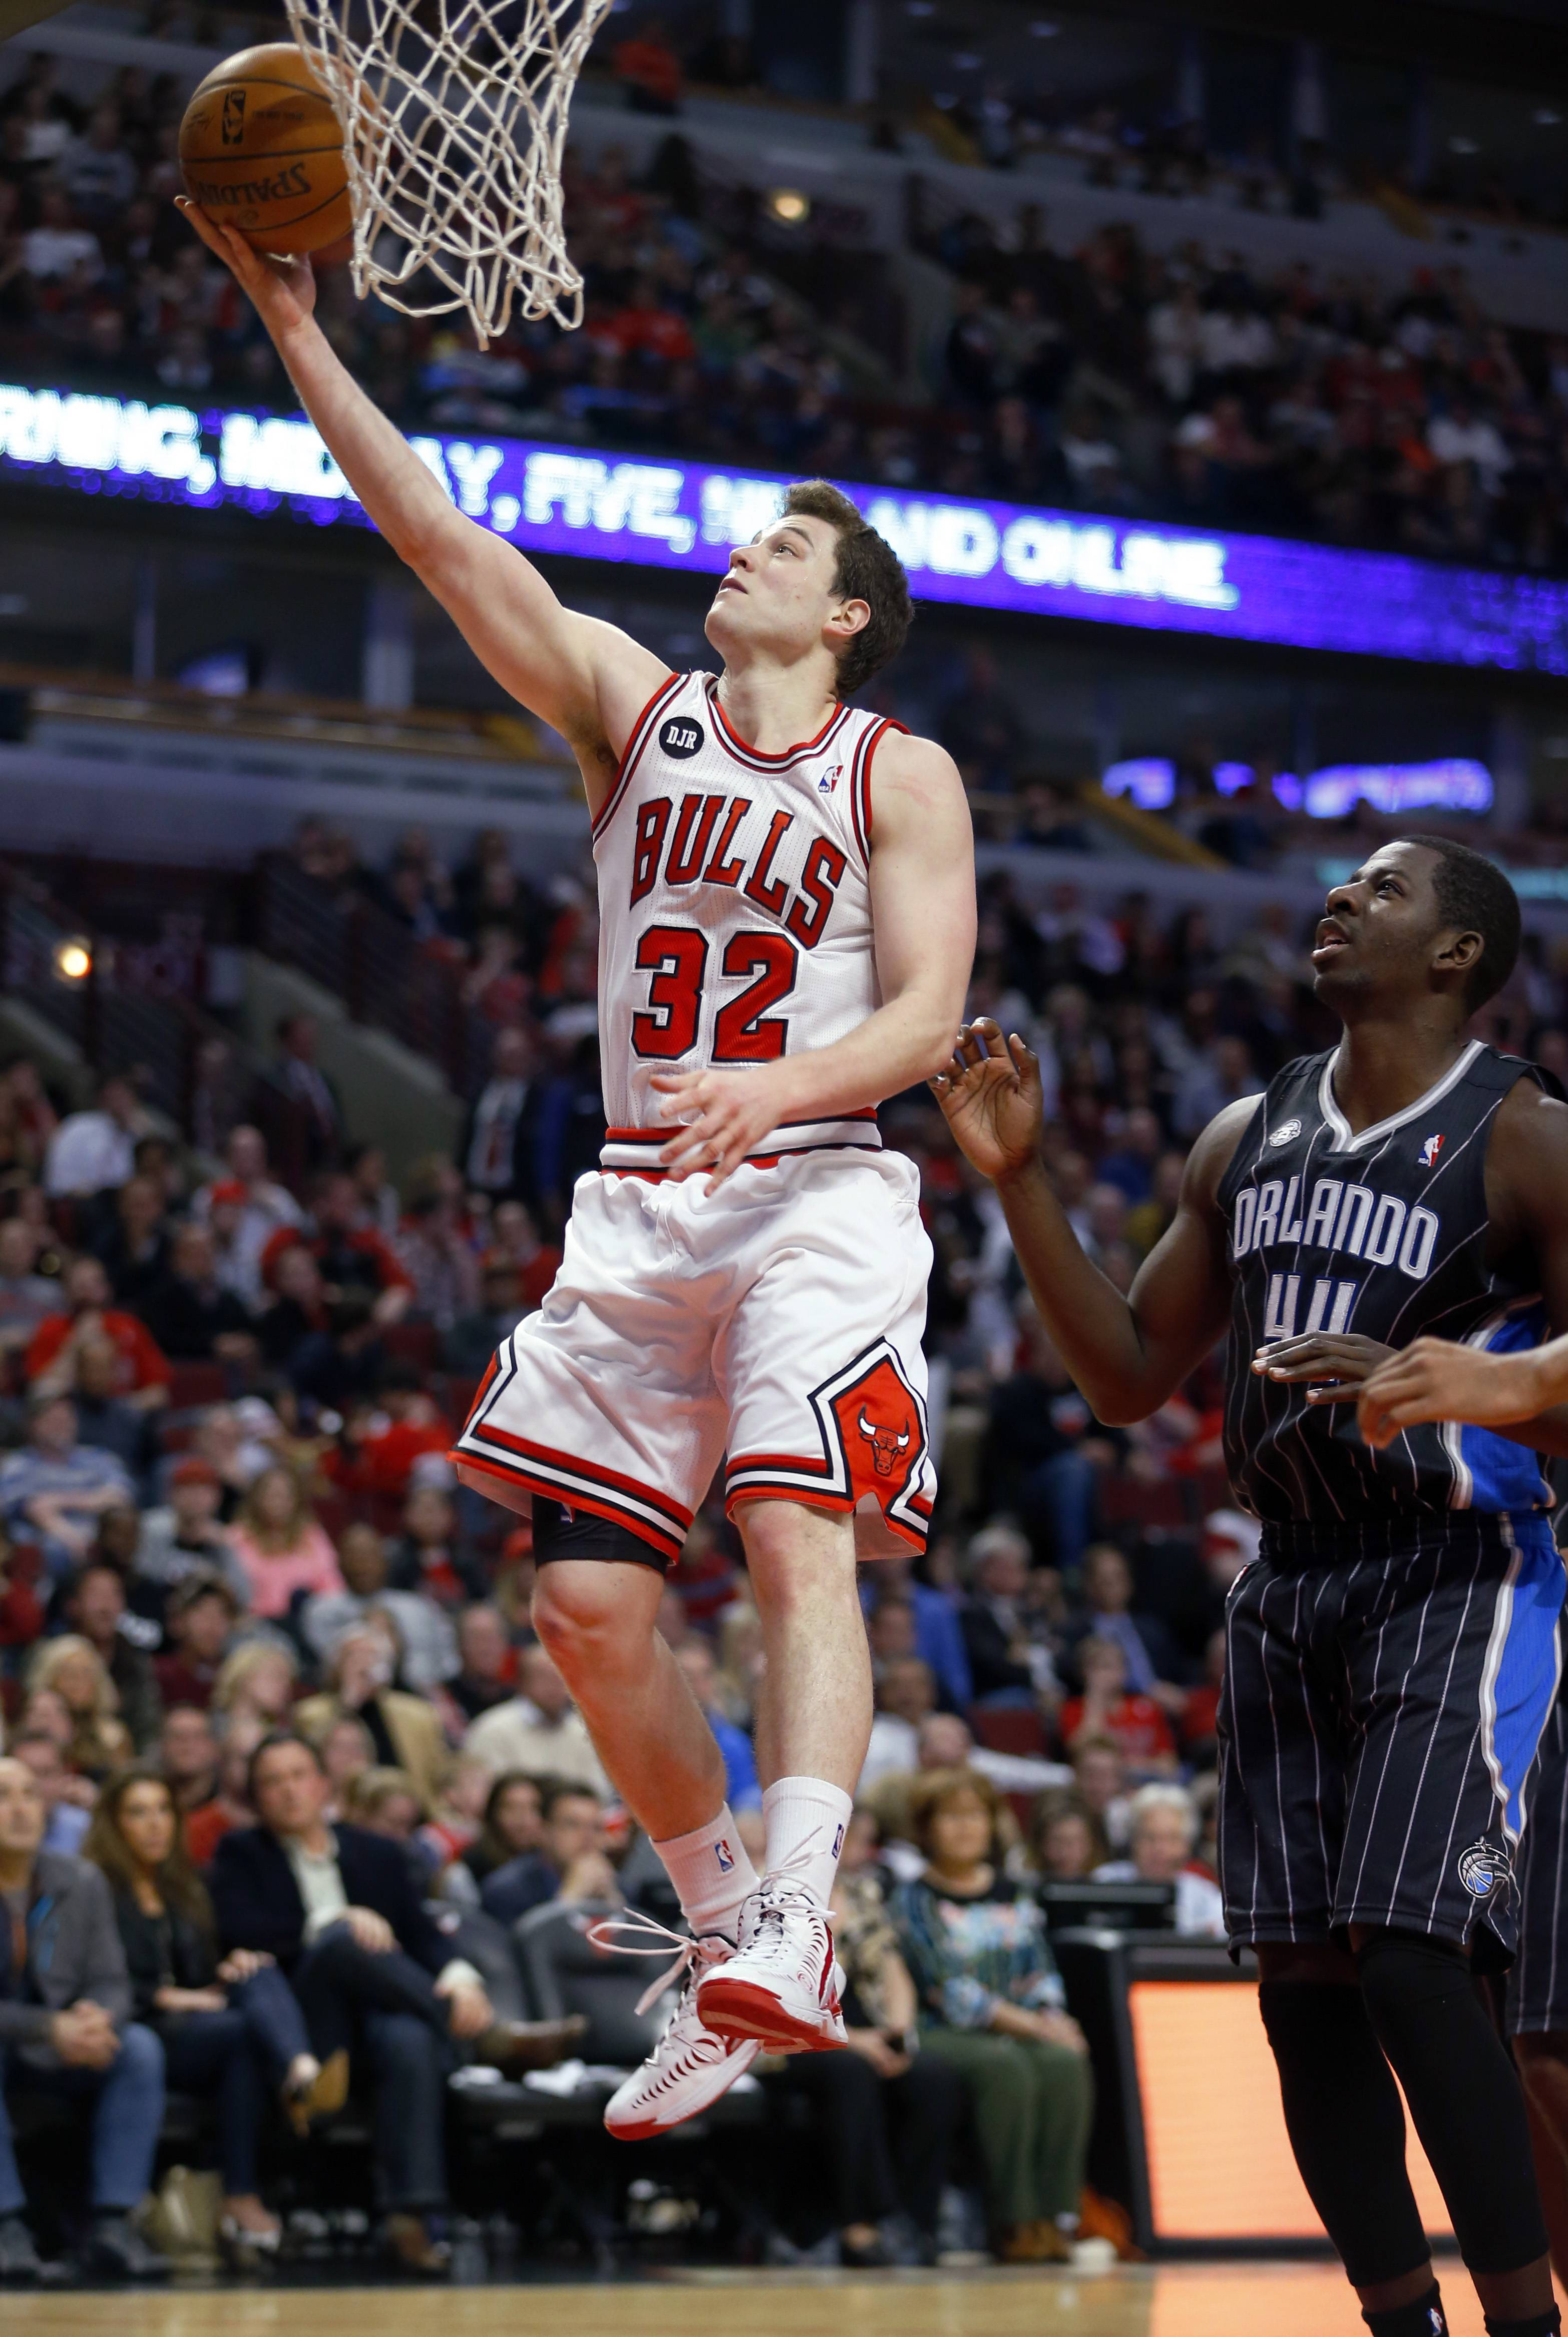 Bulls' Fredette gets chance, doesn't disappoint